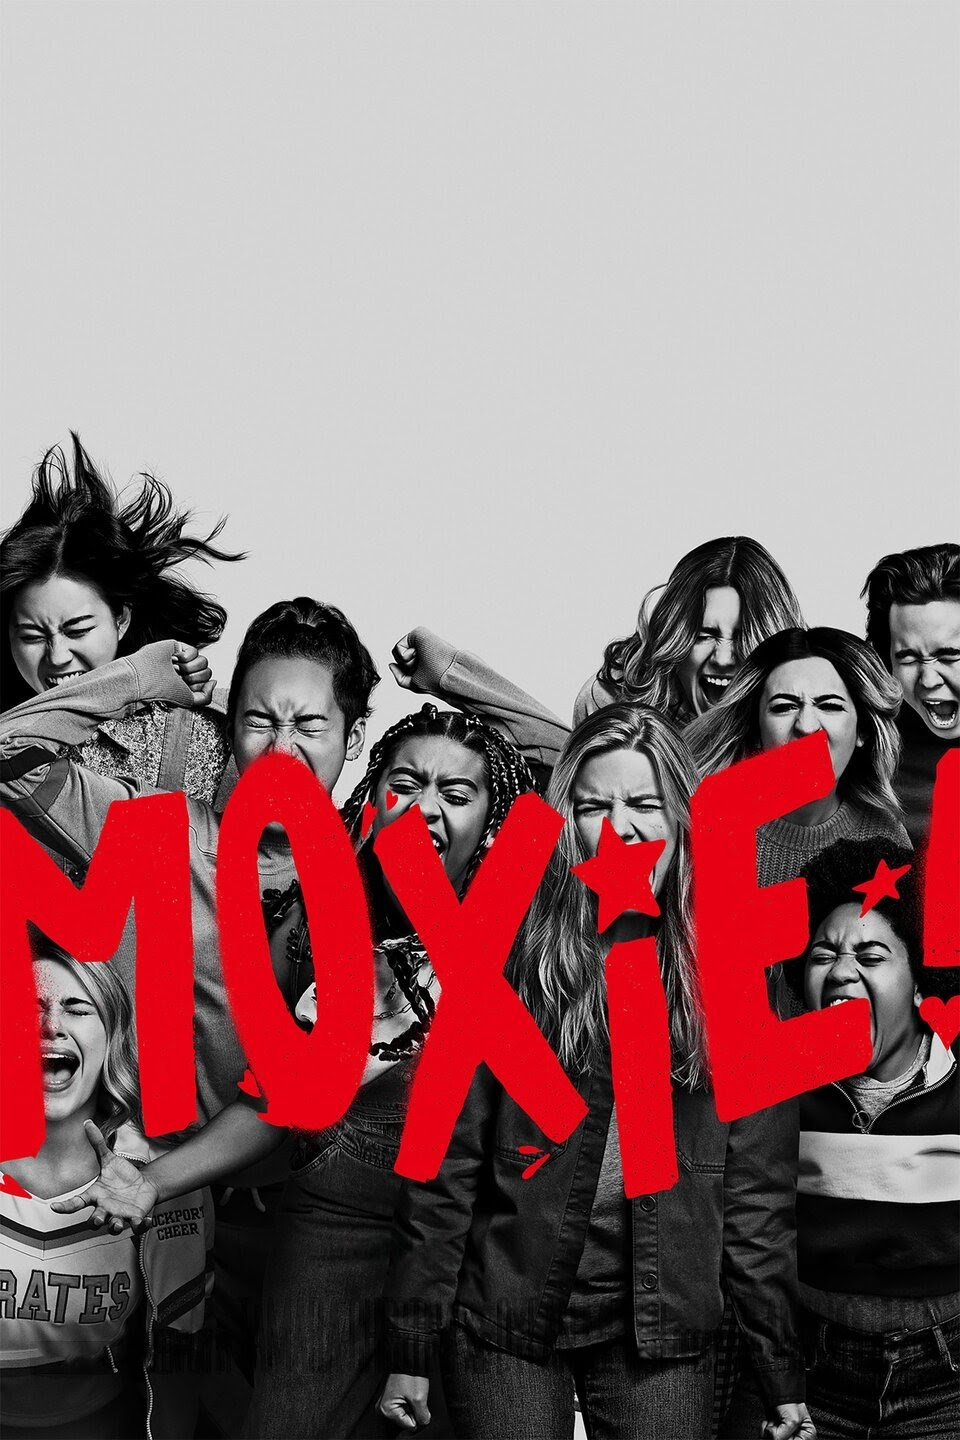 SUBTITLE: Moxie (2021) Full Movie SRT DOWNLOAD